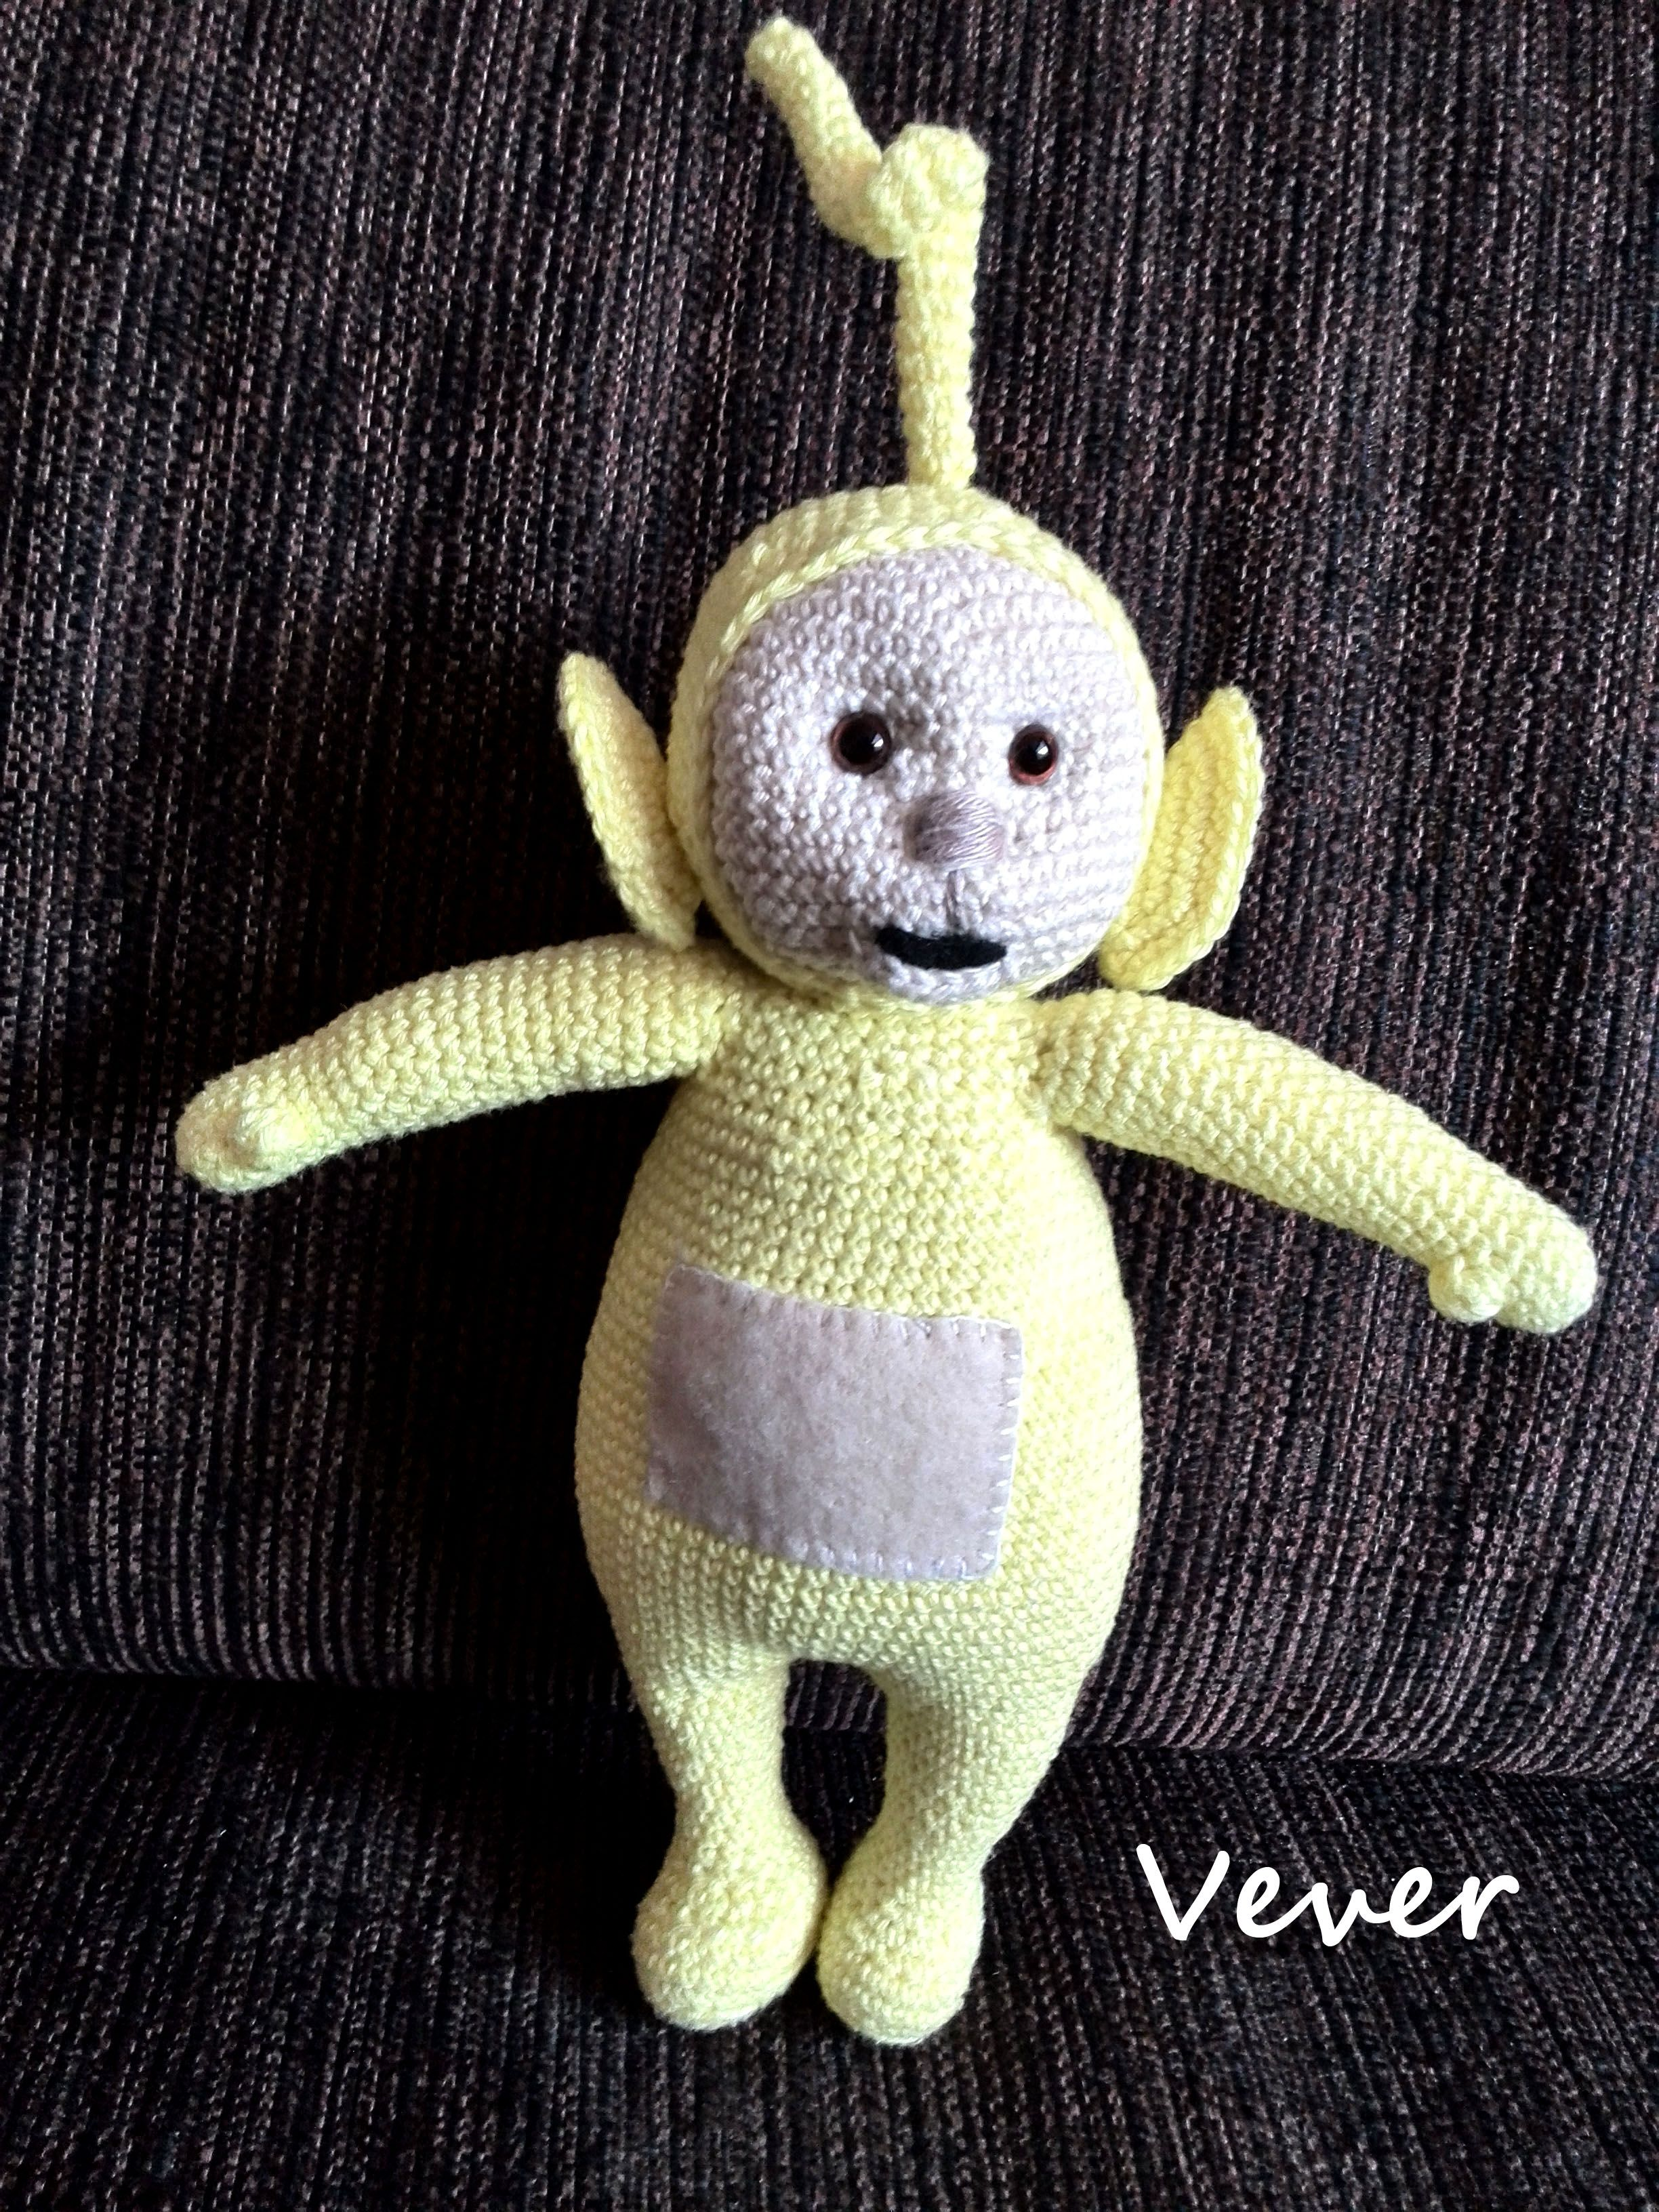 Teletubbies Knitting Pattern : my craft, amigurumi, teletubbies, laa laa, crochet Crafts for kids Pinter...